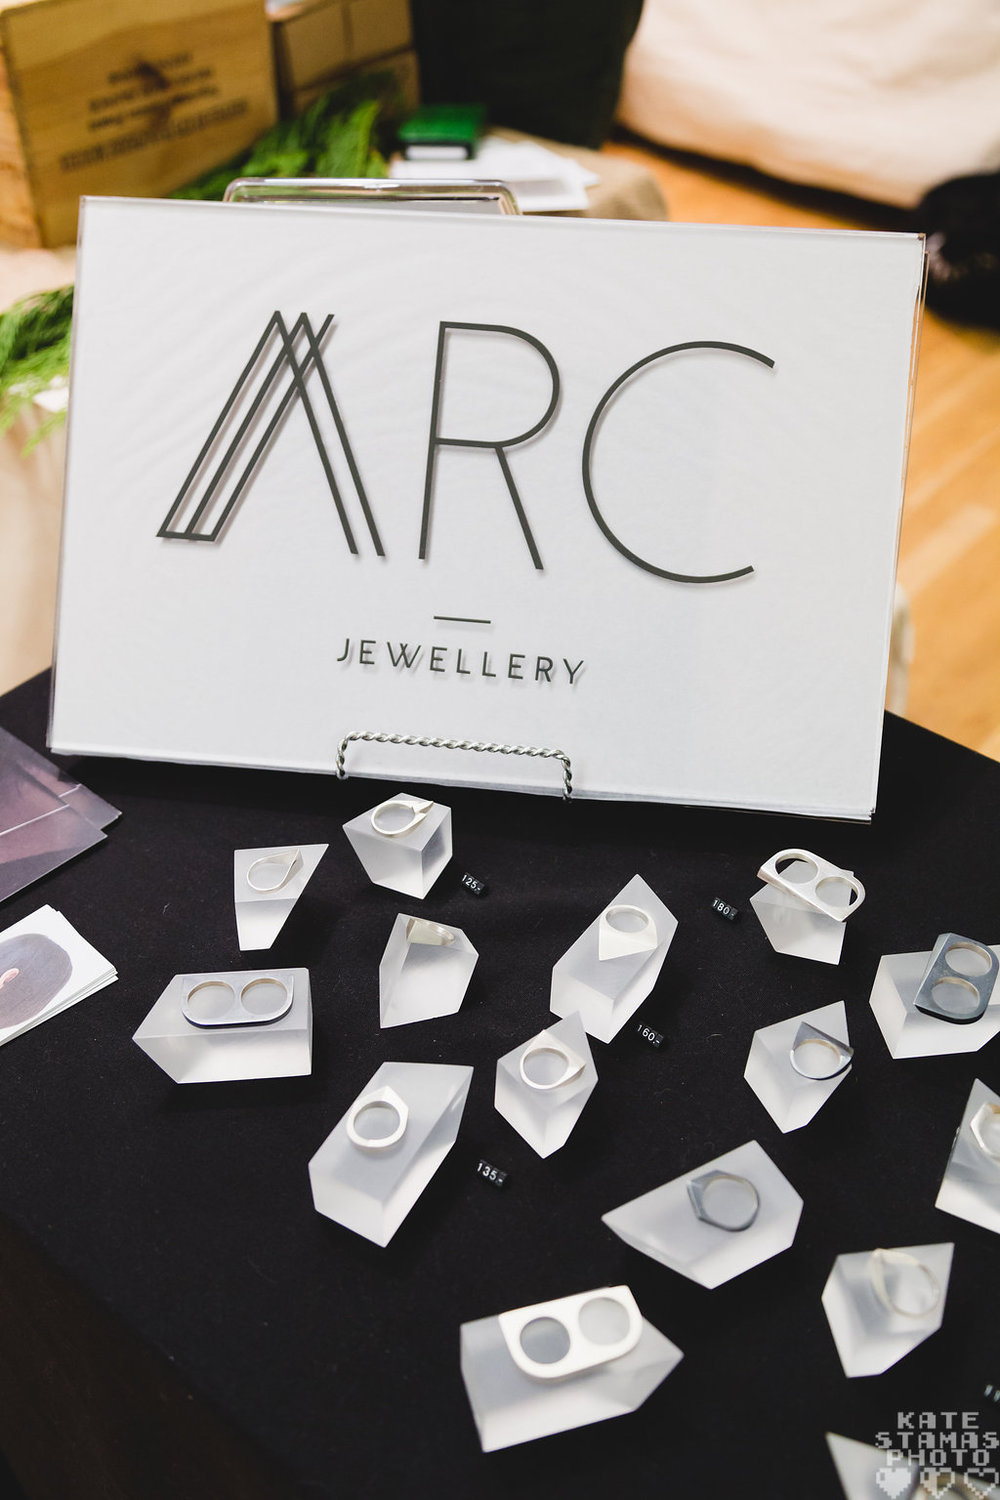 Arc Jewellery - Renegade Craft Fair New York.jpg